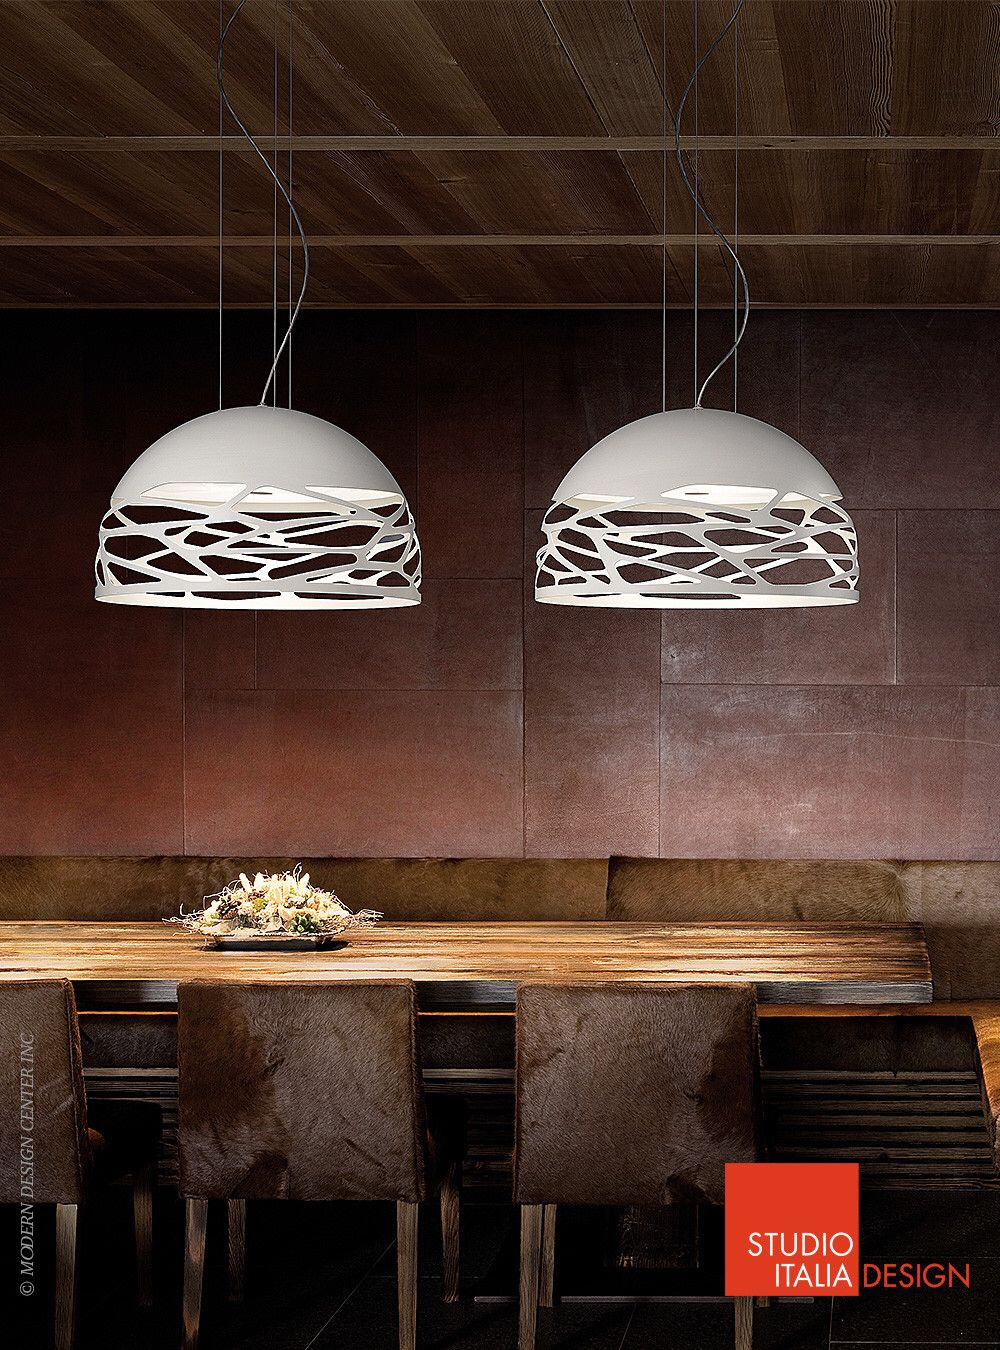 Verlichting eettafel | Wonen | Pinterest | Lights, Concrete and Ceilings